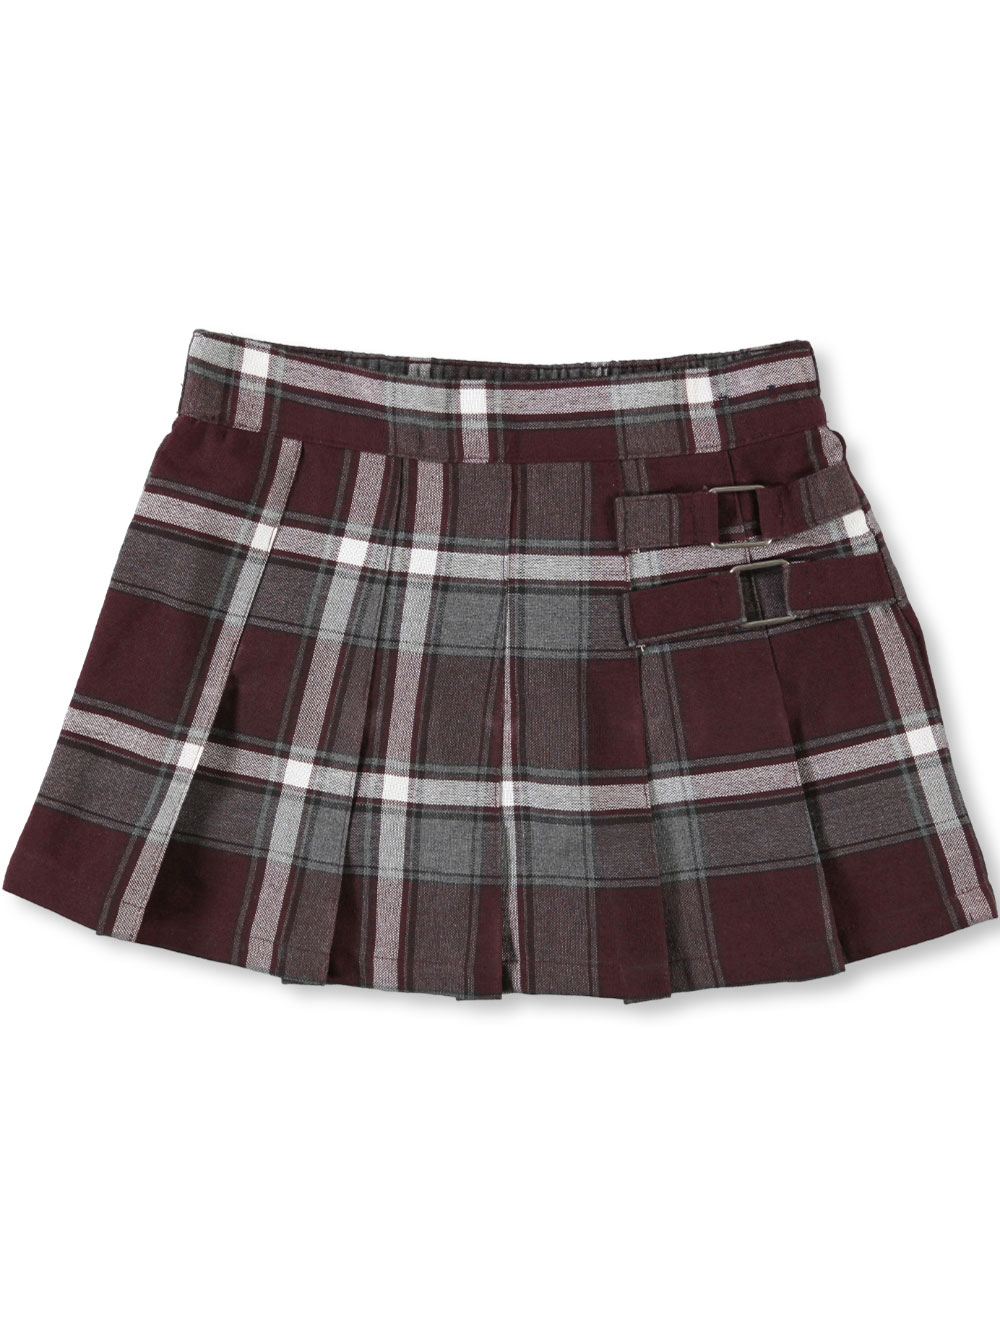 Girls Plaid #91 Shorts and Skorts